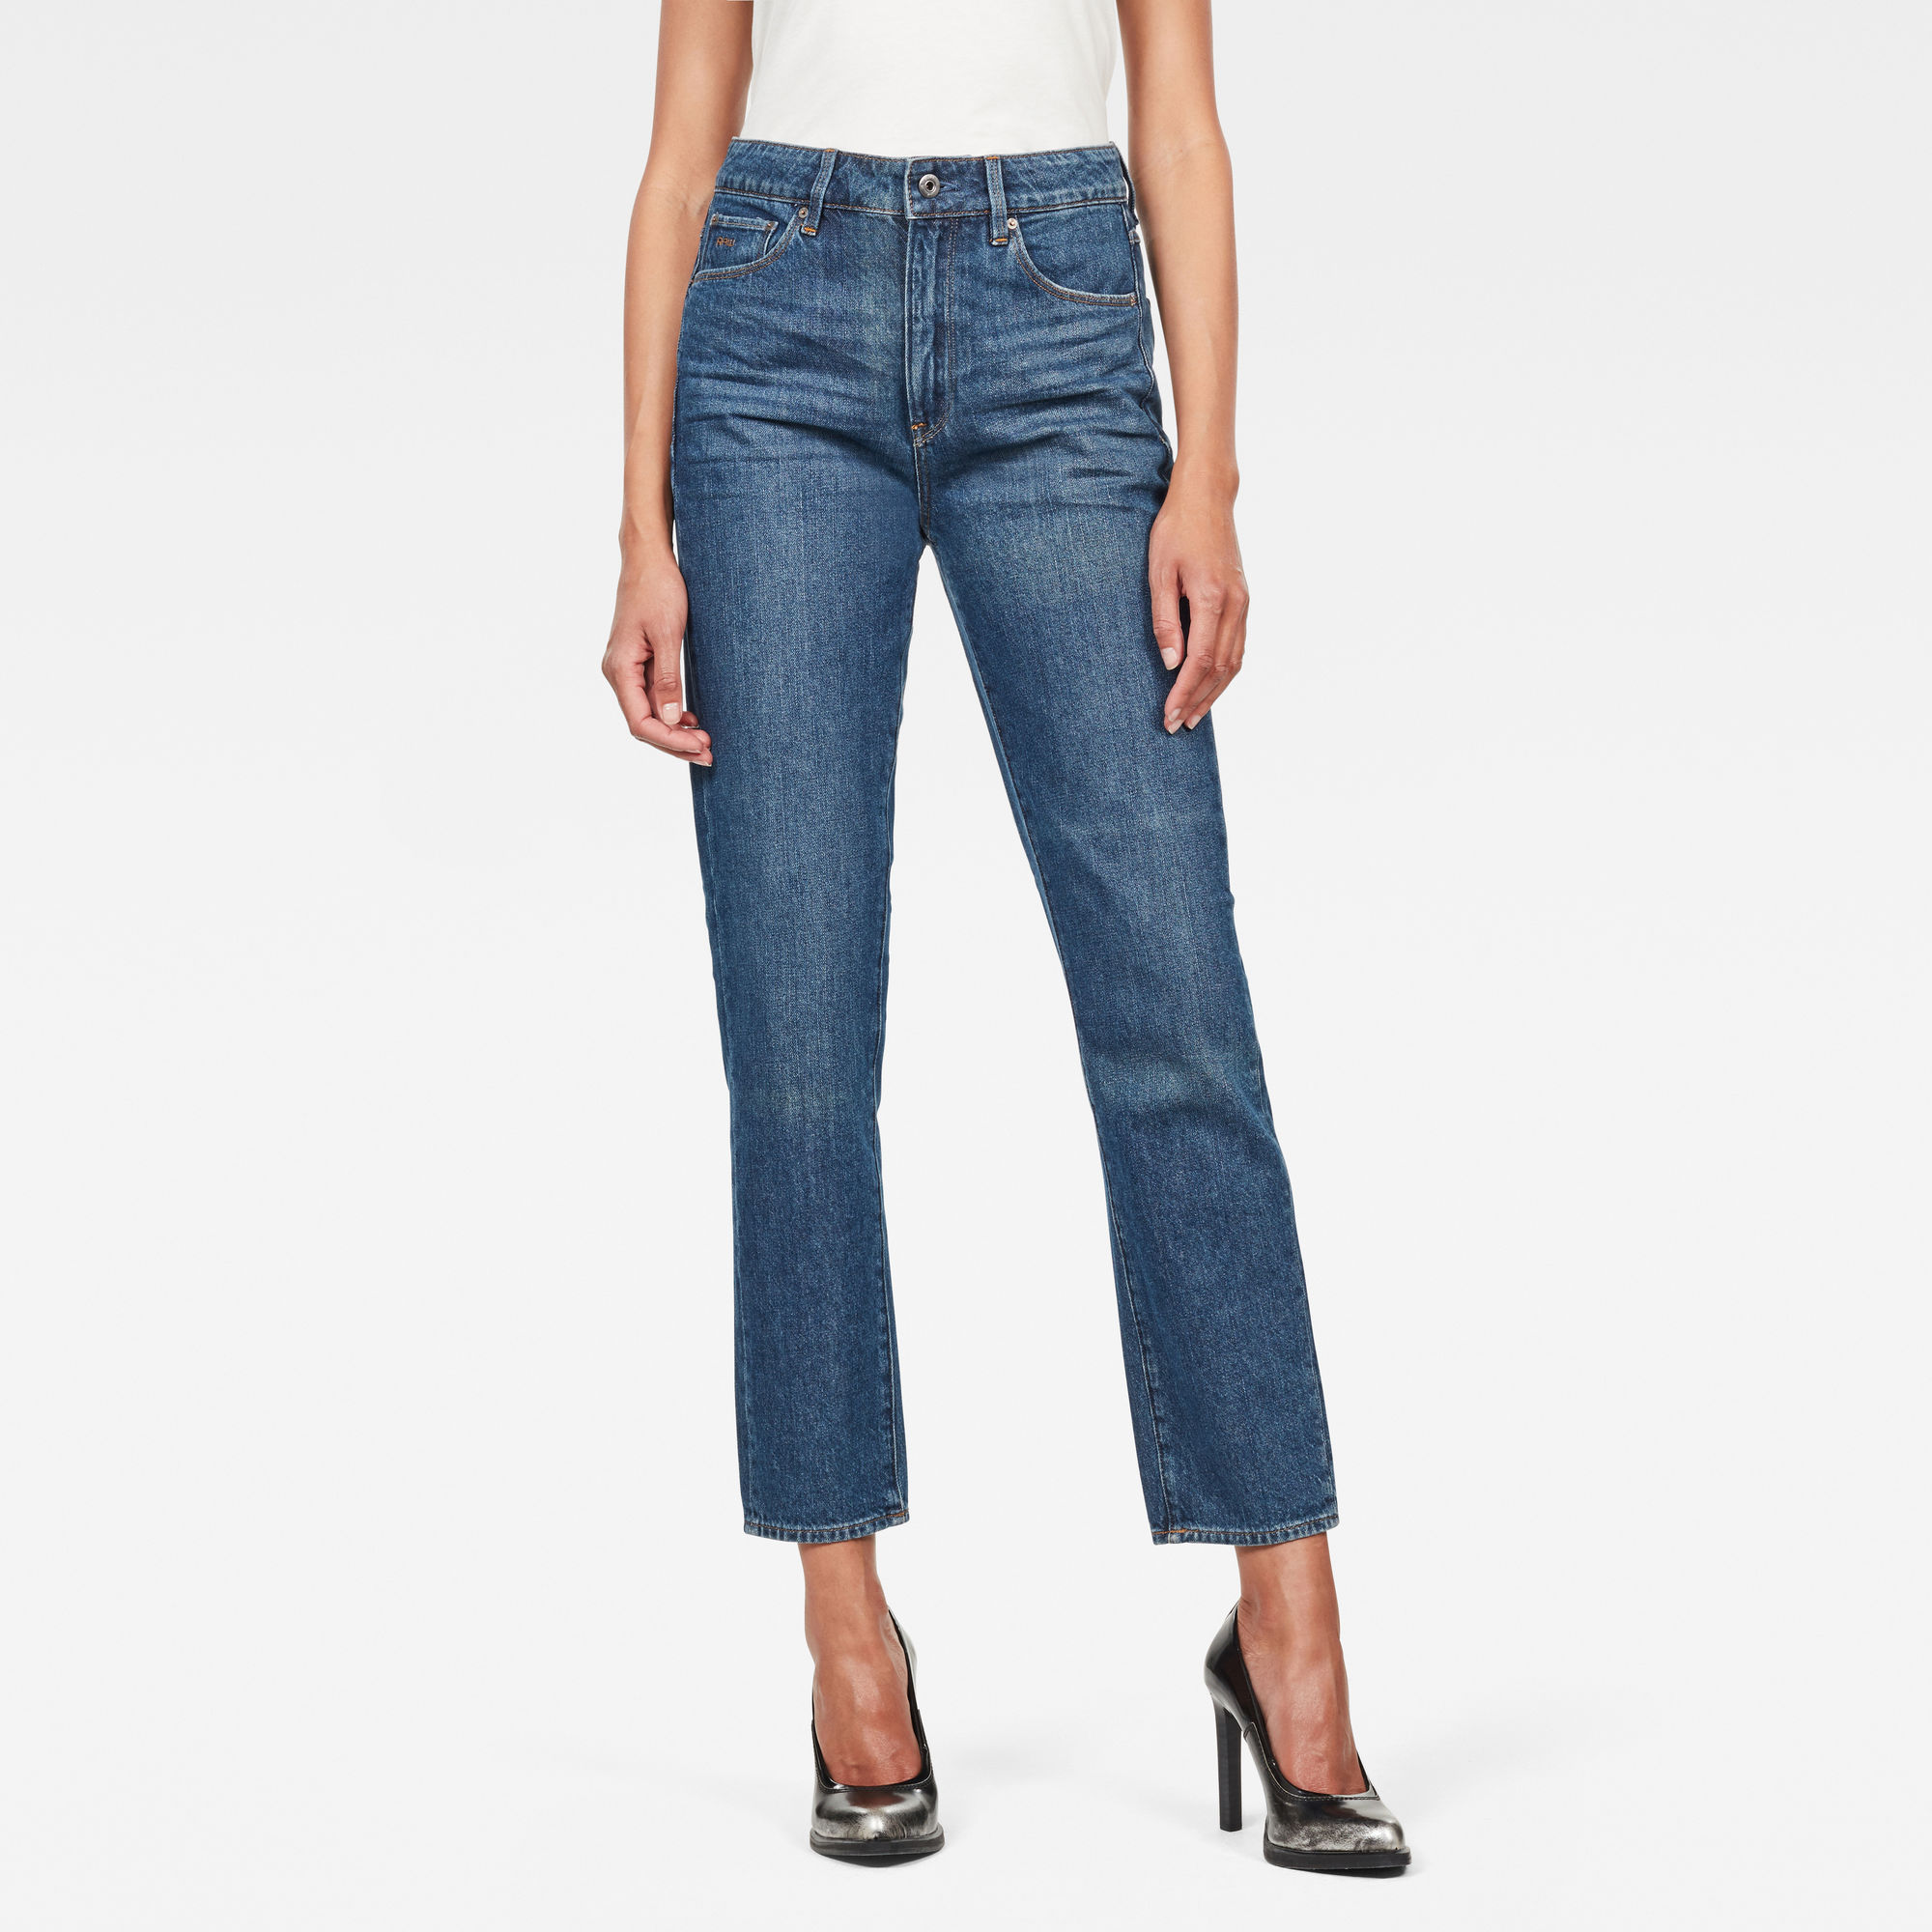 Image of 3301 High waist Straight 90s Ankle-Cut Jeans